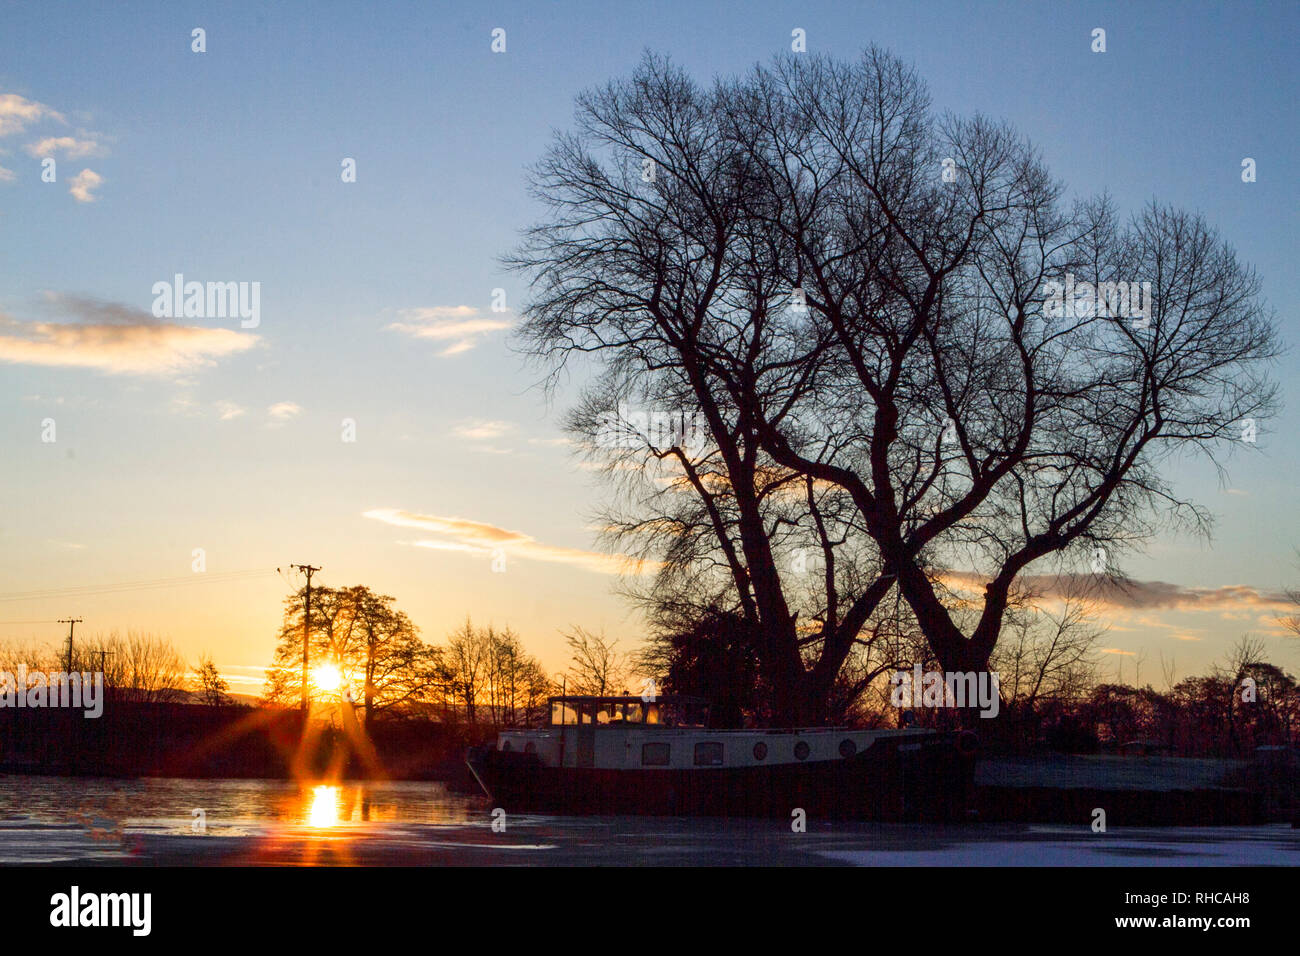 Rufford, West Lancashire, UK. 2nd February 2019. Marina Sunrise. A cool & crisp start to the day as a beautiful morning sunrise cascades over the canal boats moored on the picturesque Rufford Marina in West Lancashire. Credit: Cernan Elias/Alamy Live News - Stock Image